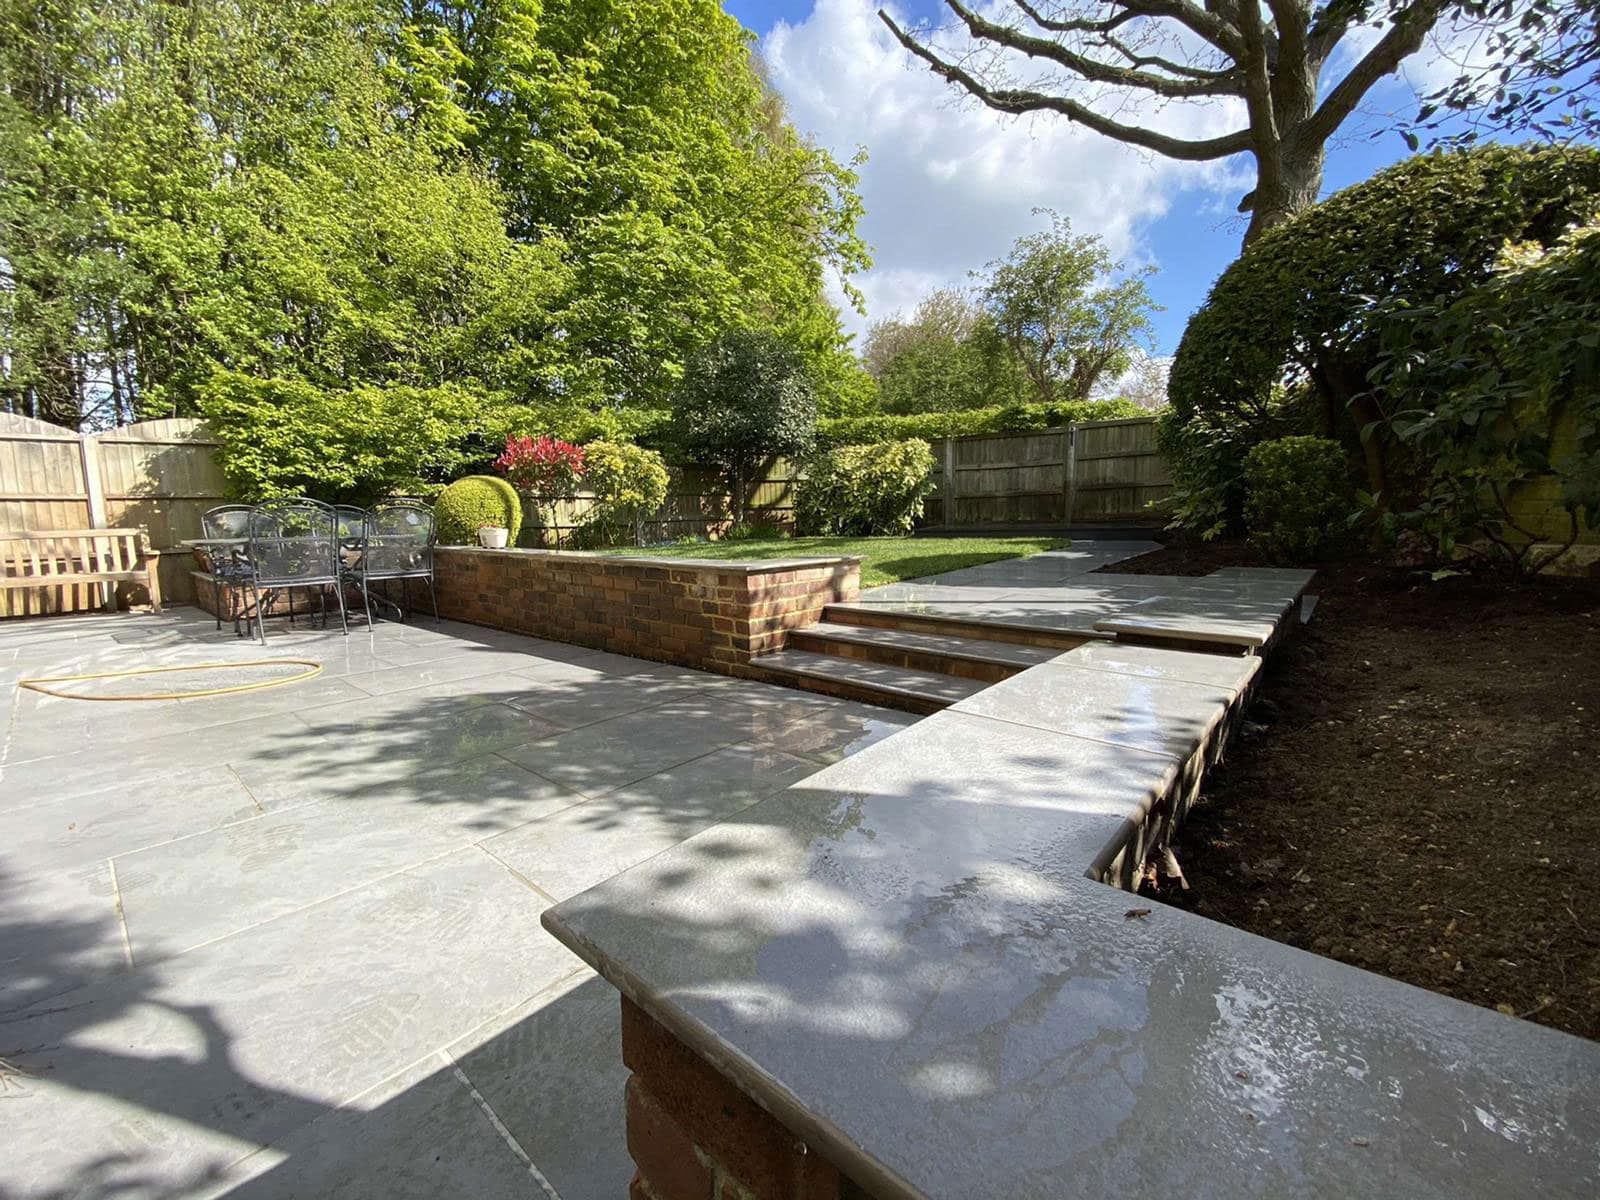 Attractive patio in mid sized garden with trees in the background